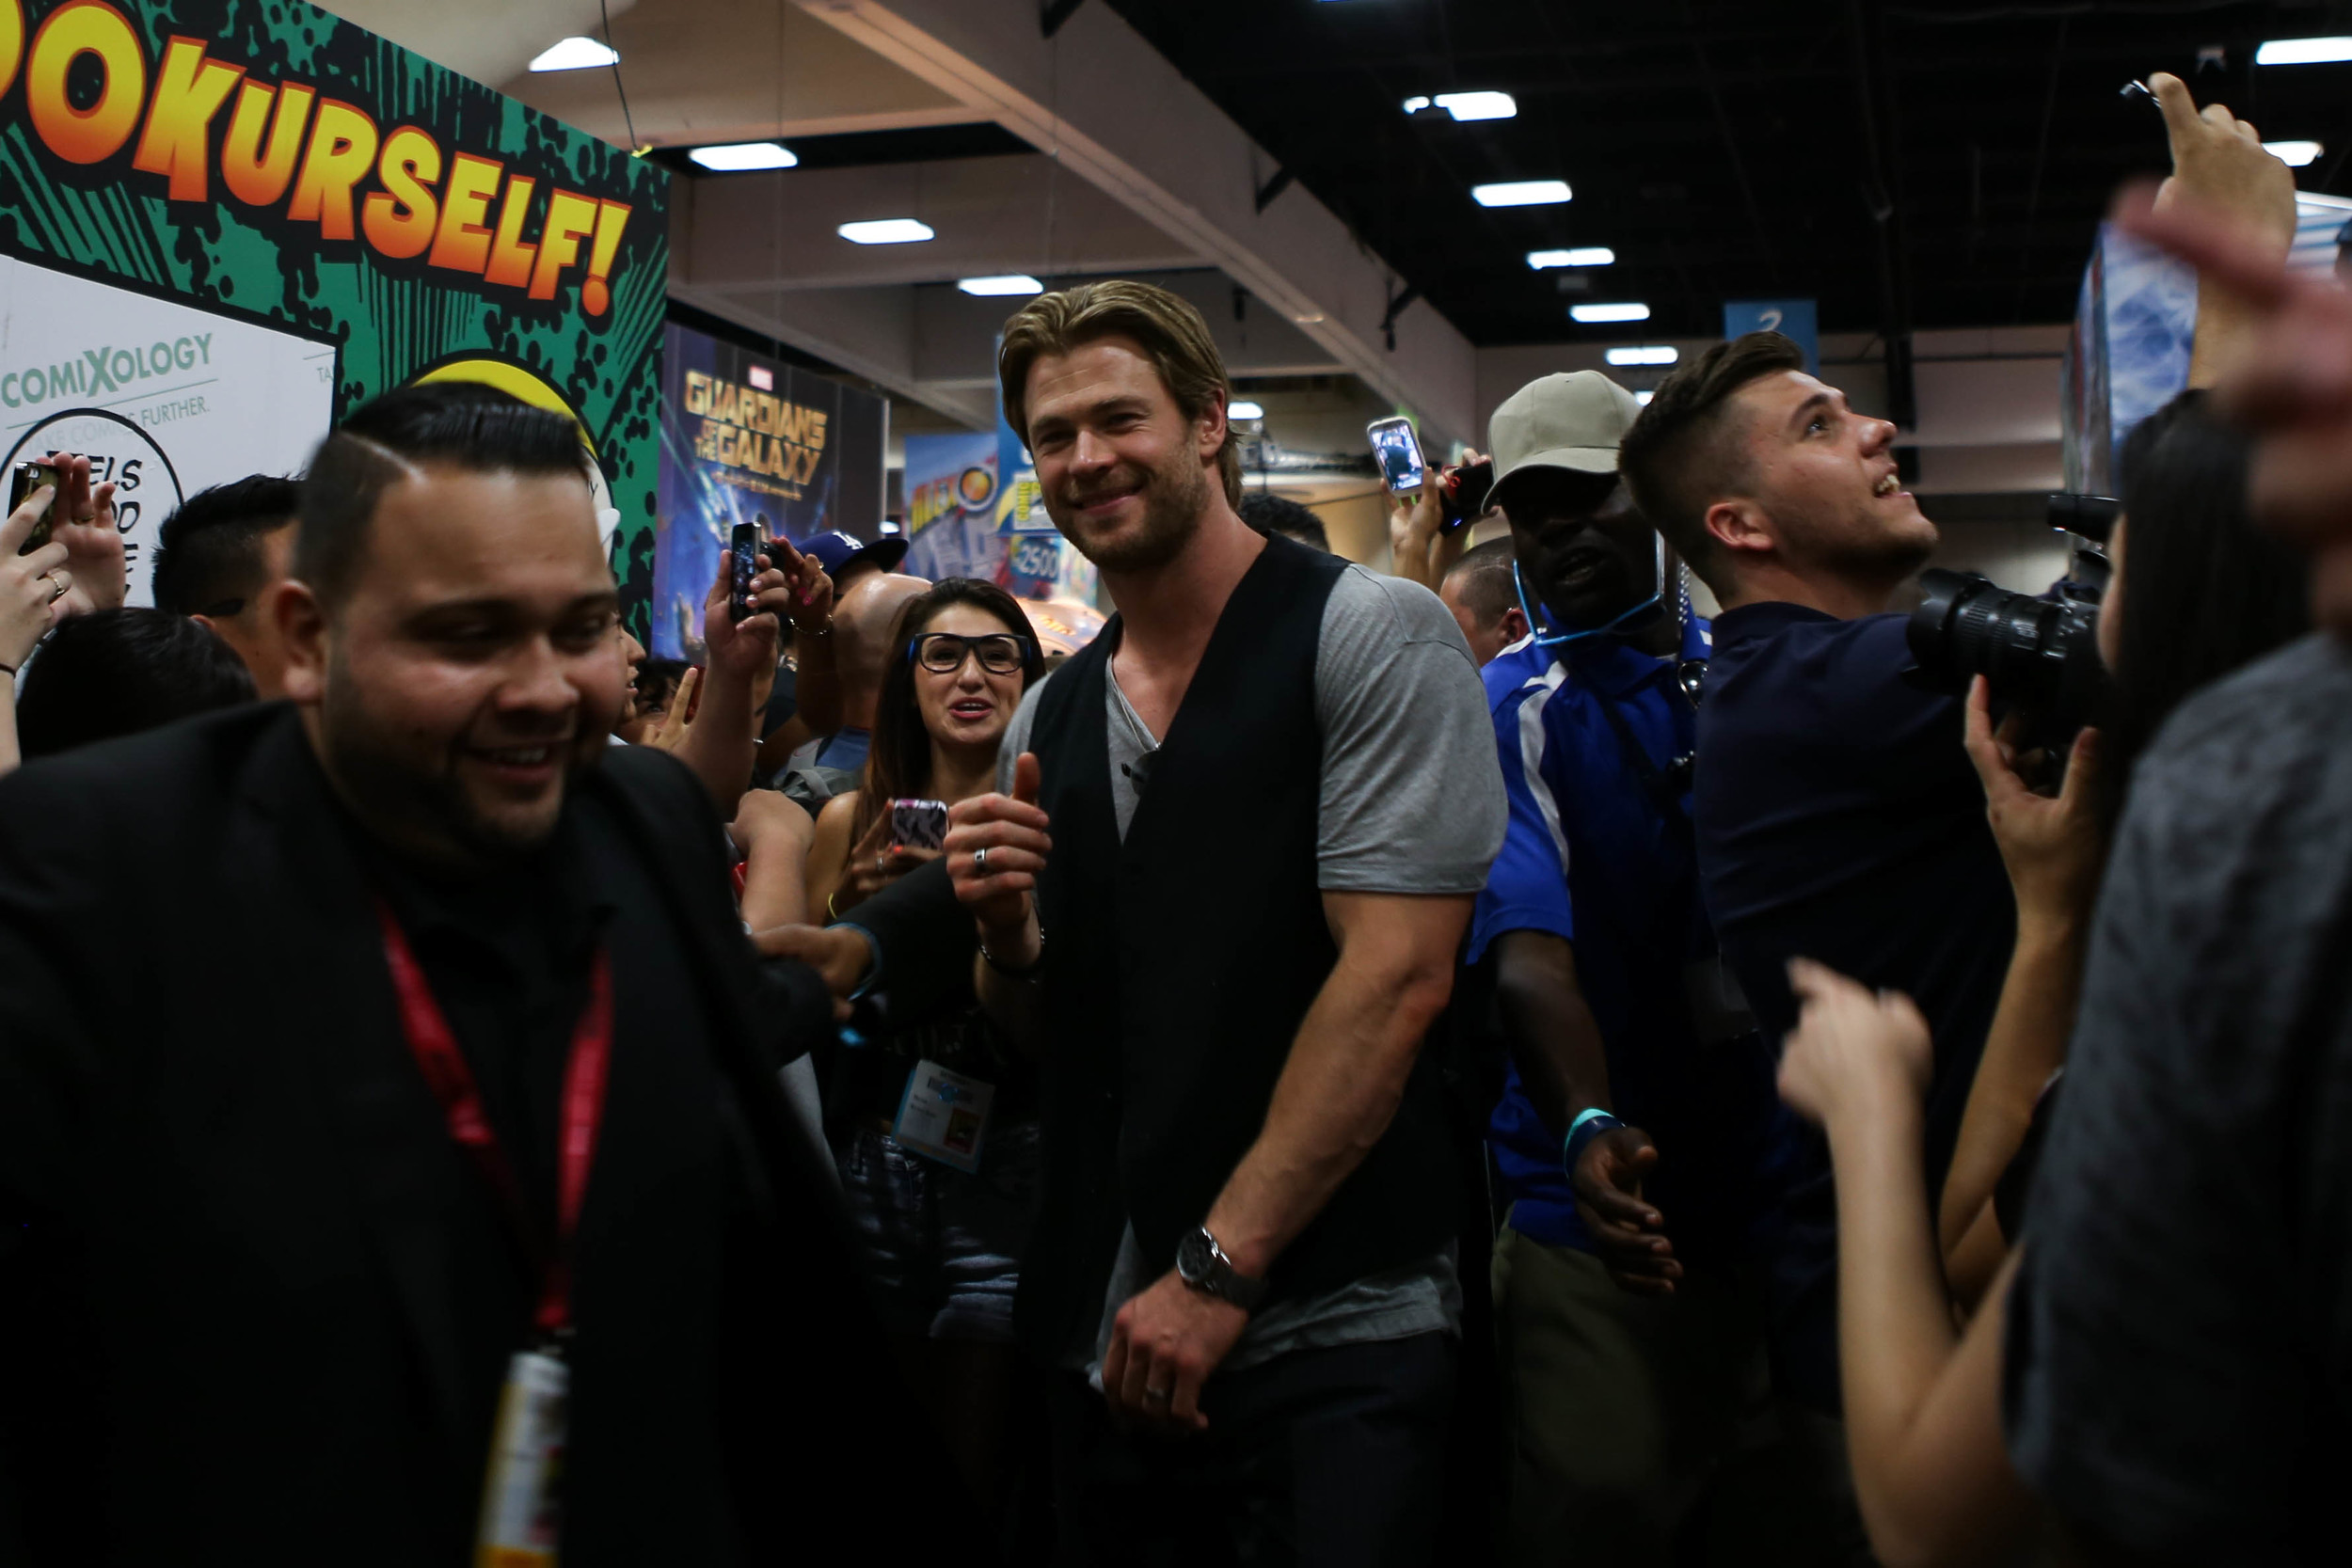 Thor AKA Chris Hemsworth, he even posed for me.